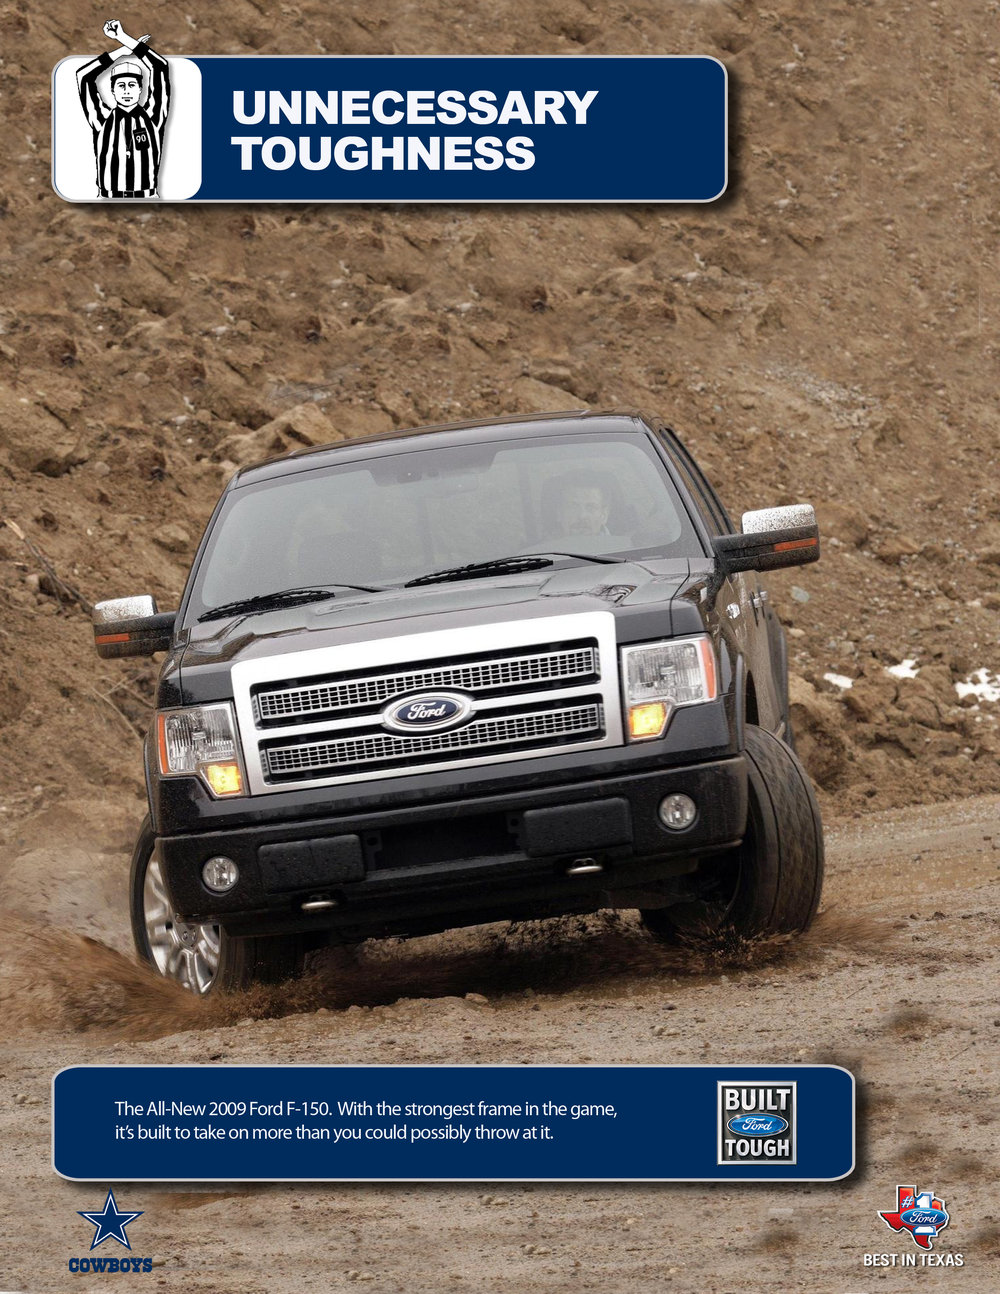 Ford F150-Unnecessary Toughness.jpg